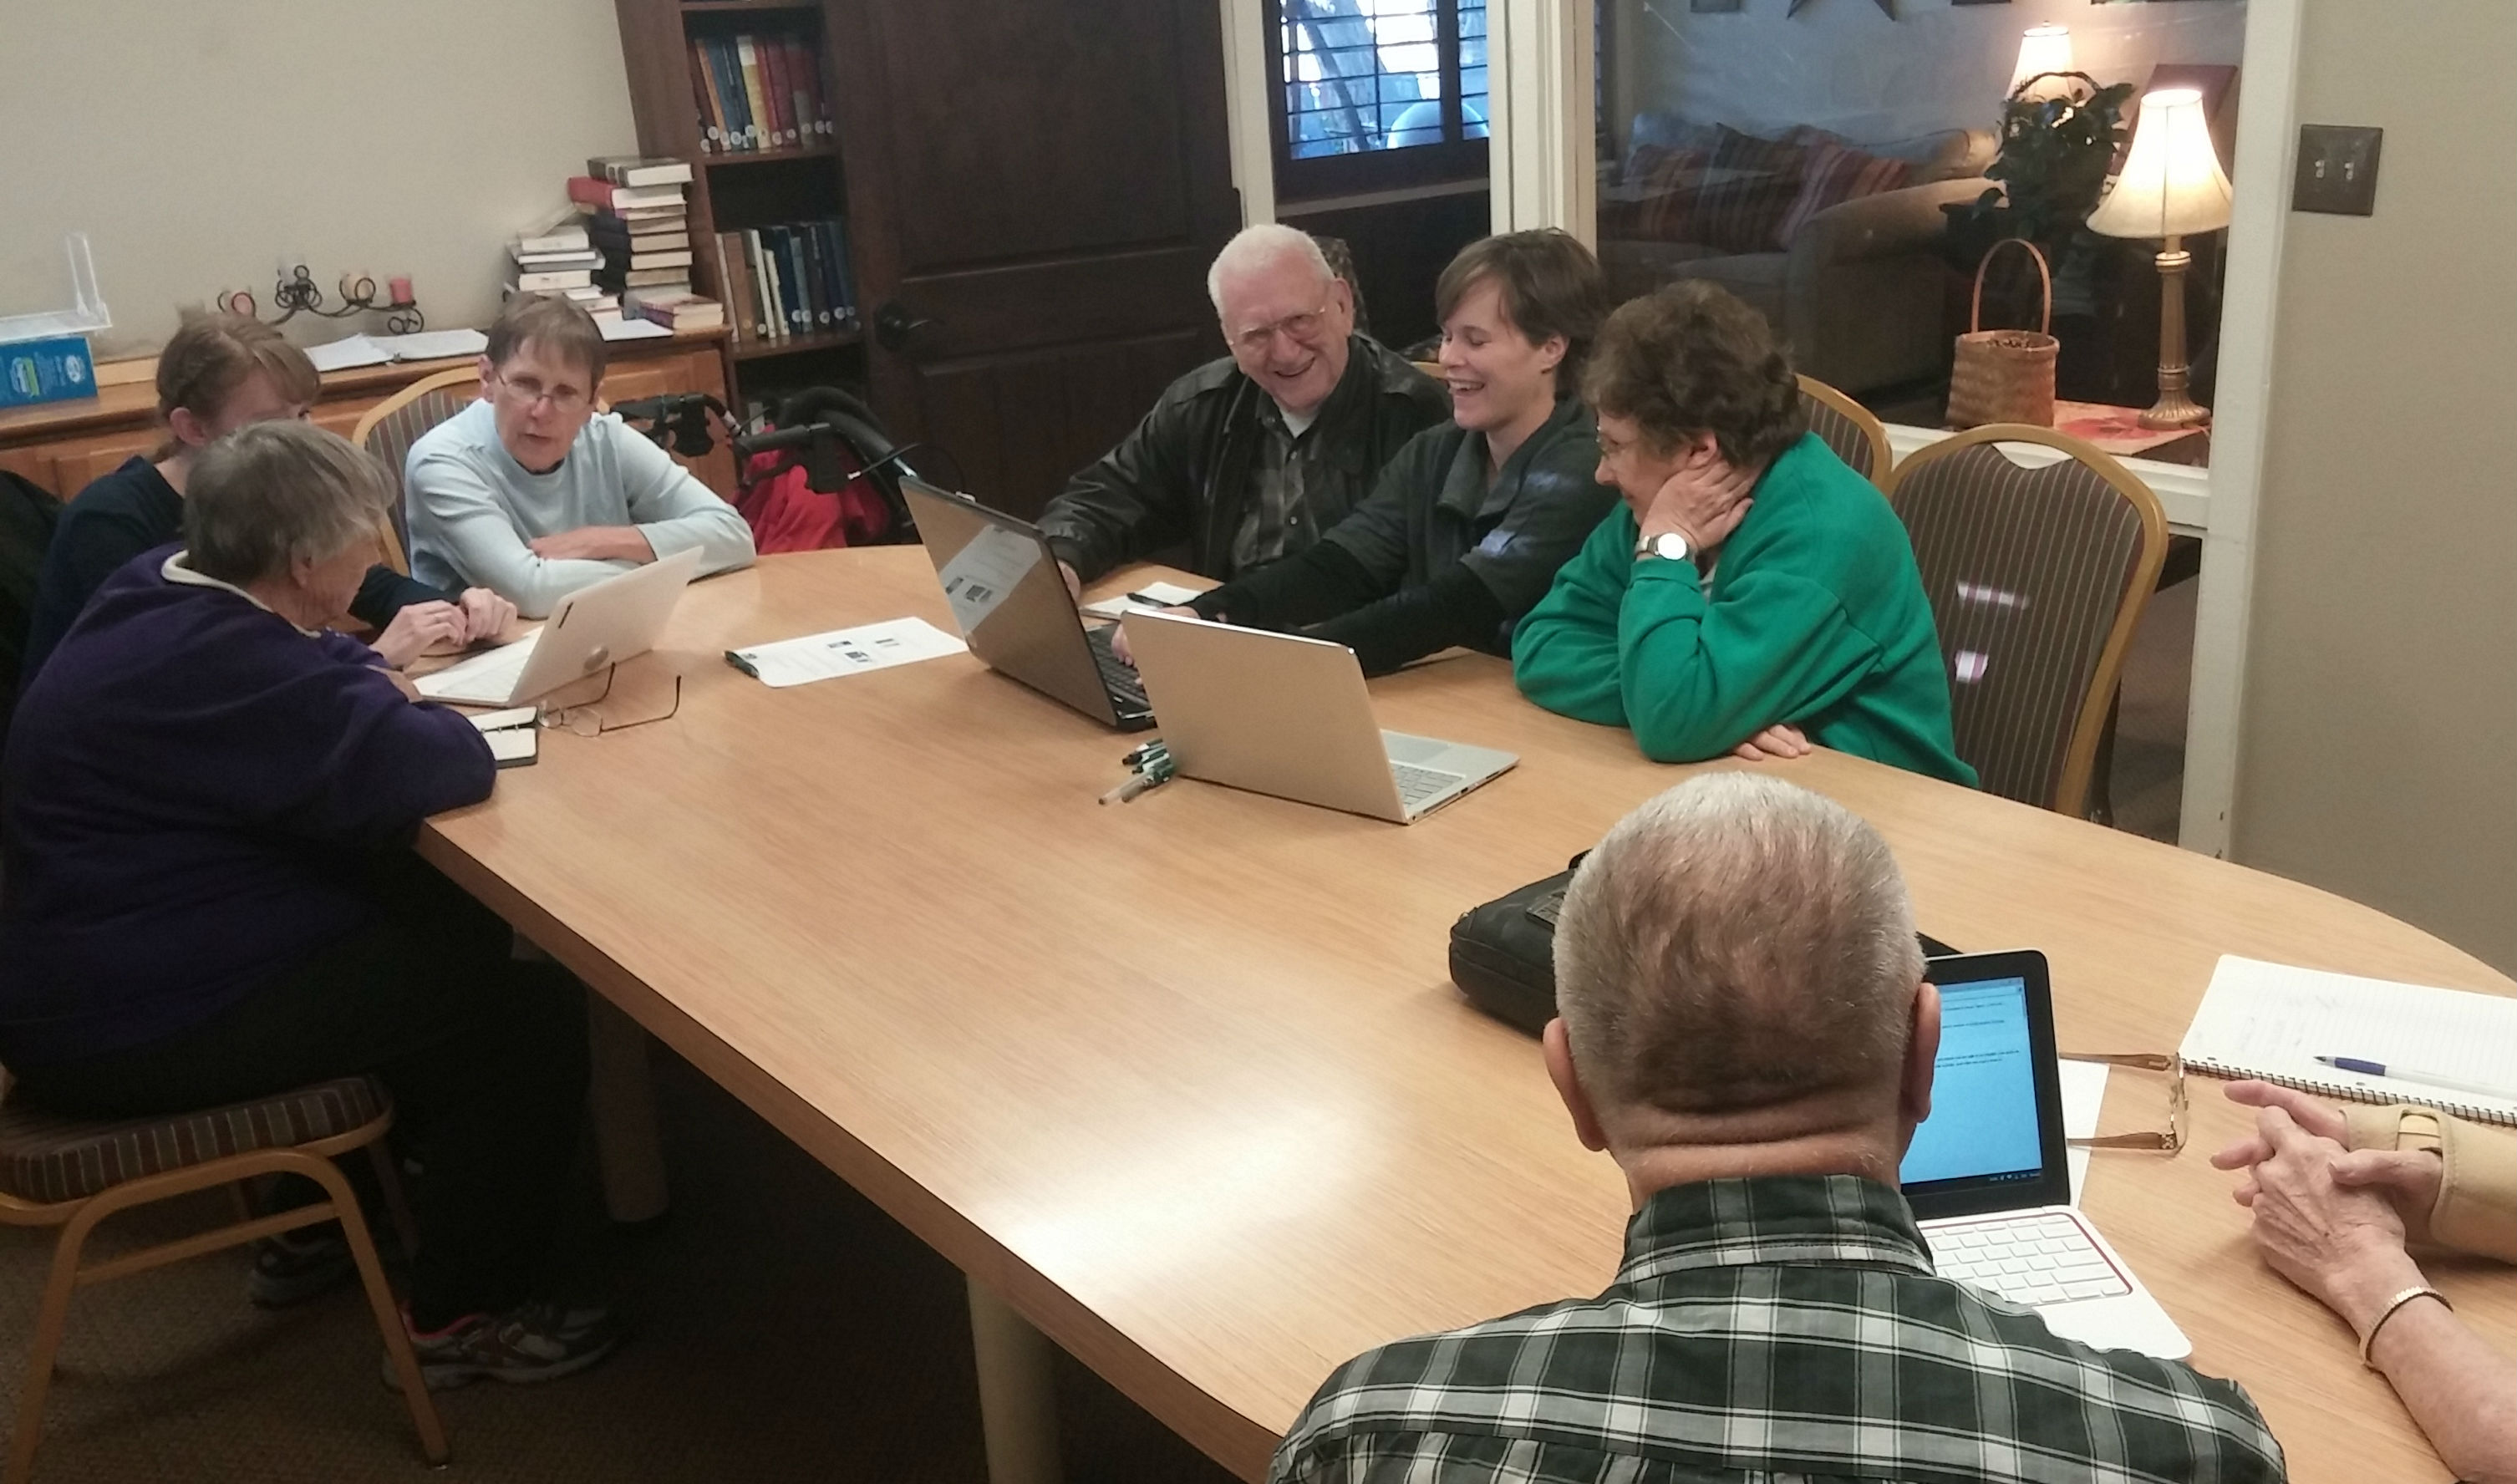 Elders gather around a laptop, smiling.